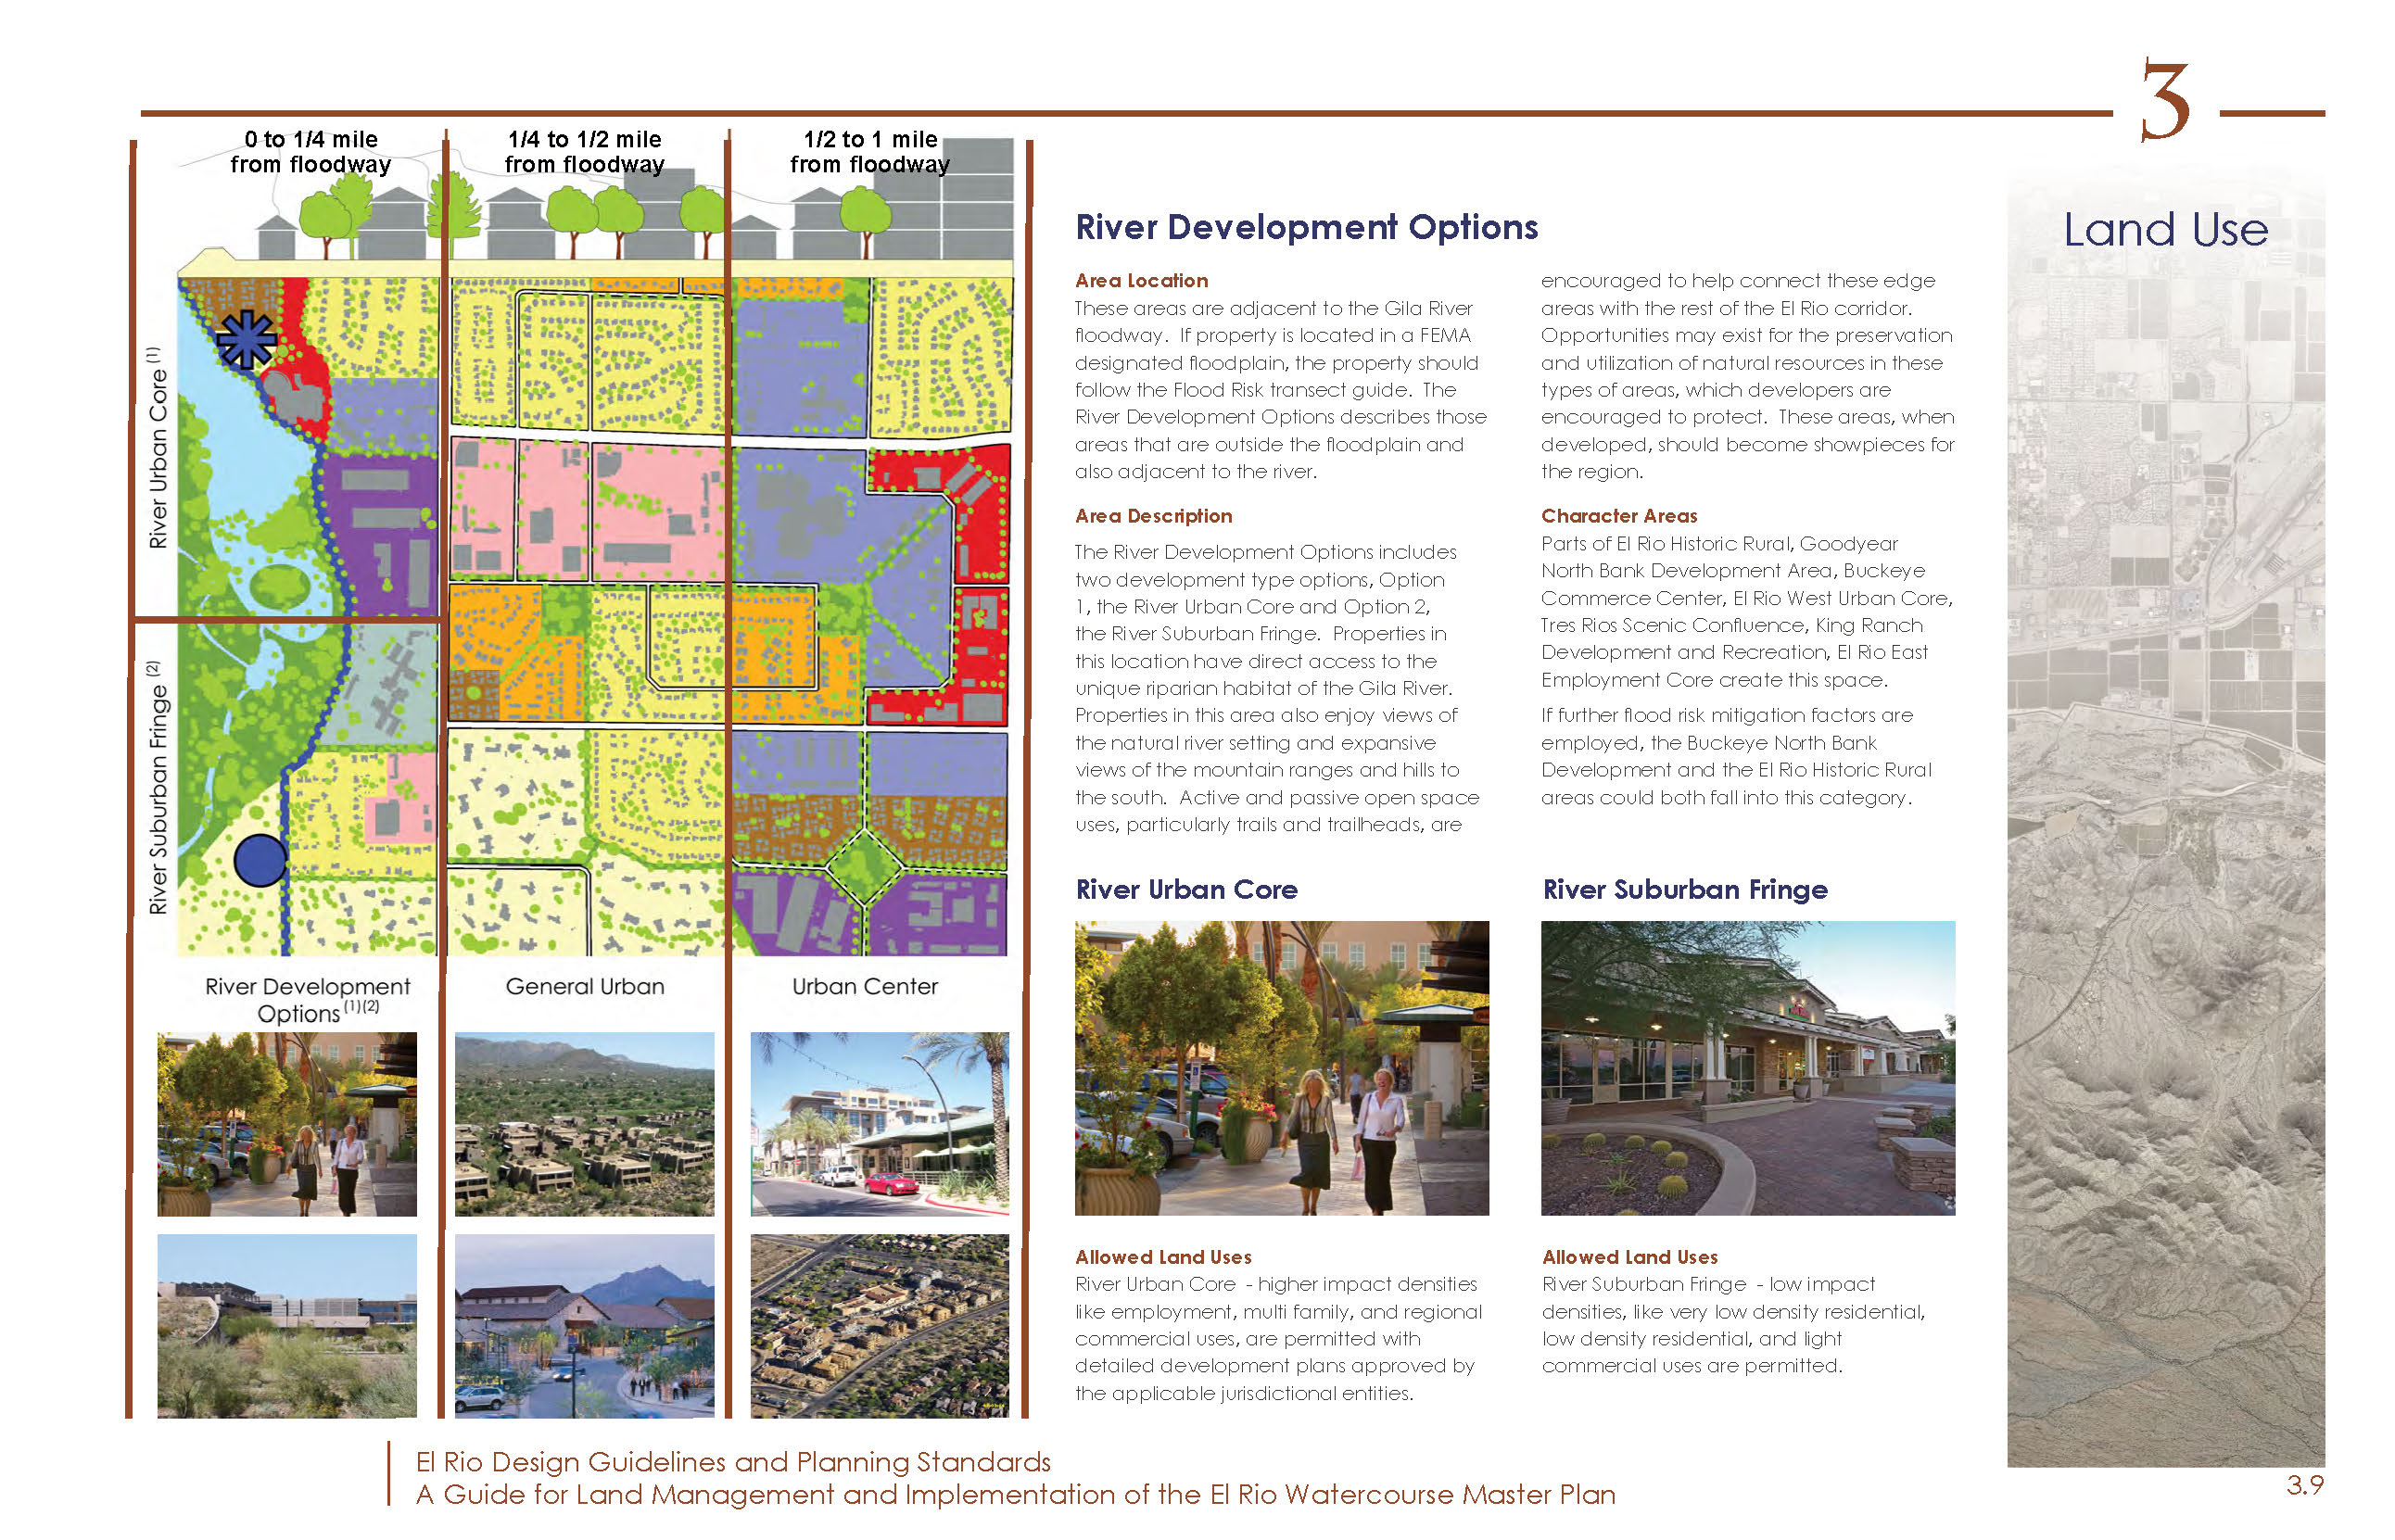 Final-El-Rio-Design-Guidelines-and-Planning-Standards-Report-2015_12_22a_Page_045